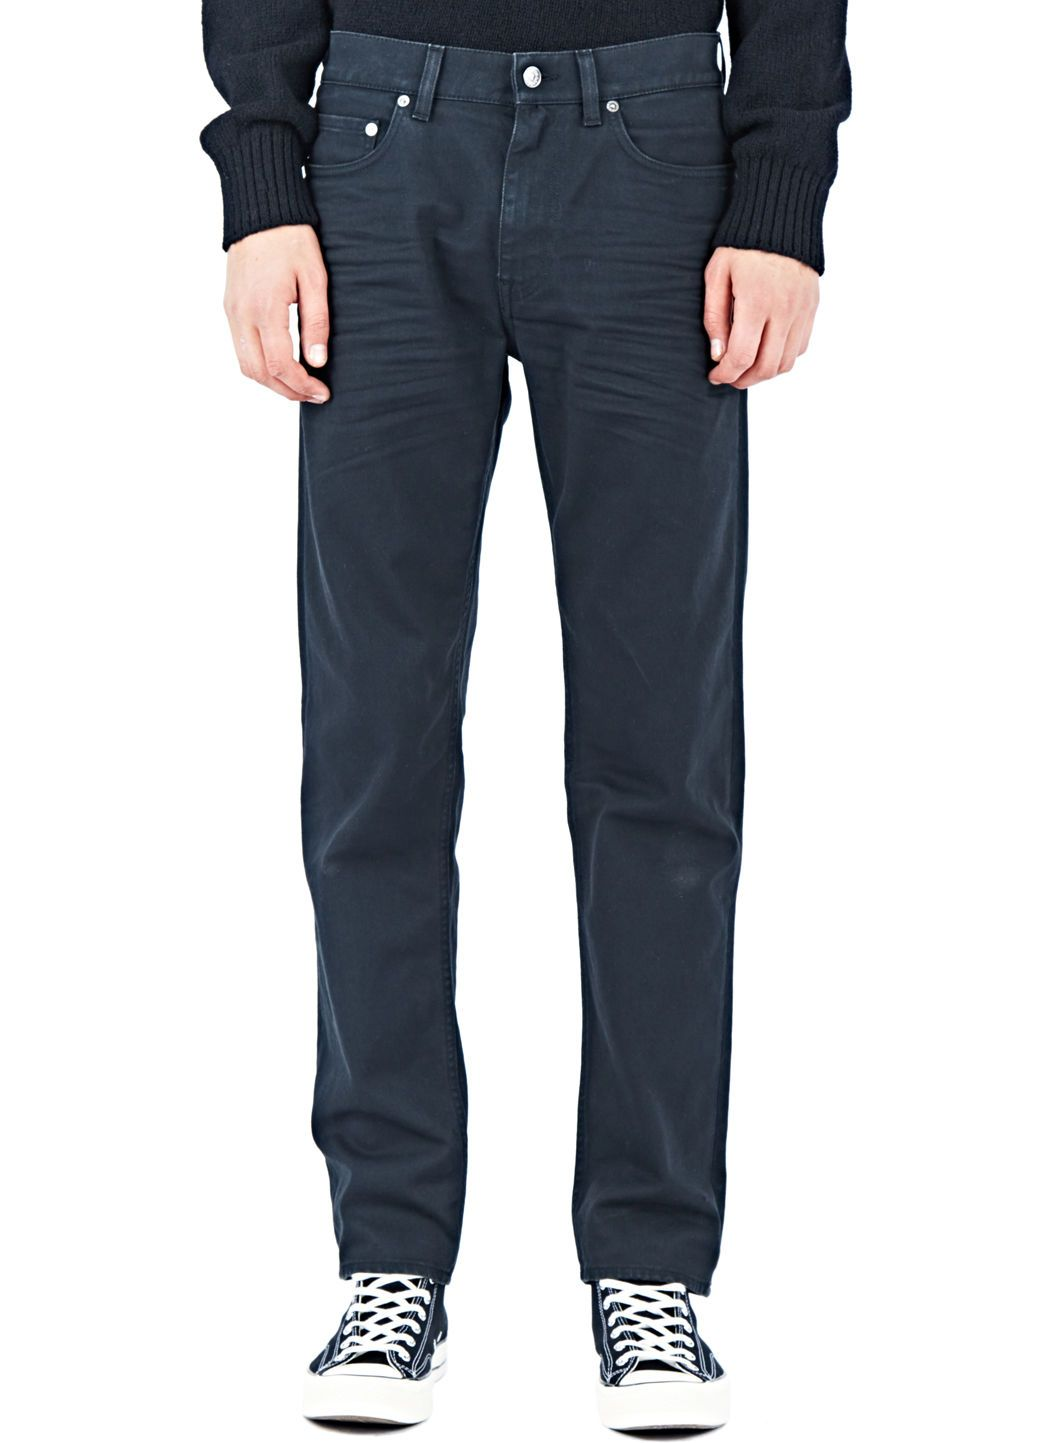 ACNE STUDIOS Acne Studios Men'S Ash Antrosit Jeans From Aw15 In Black. #acnestudios #cloth #